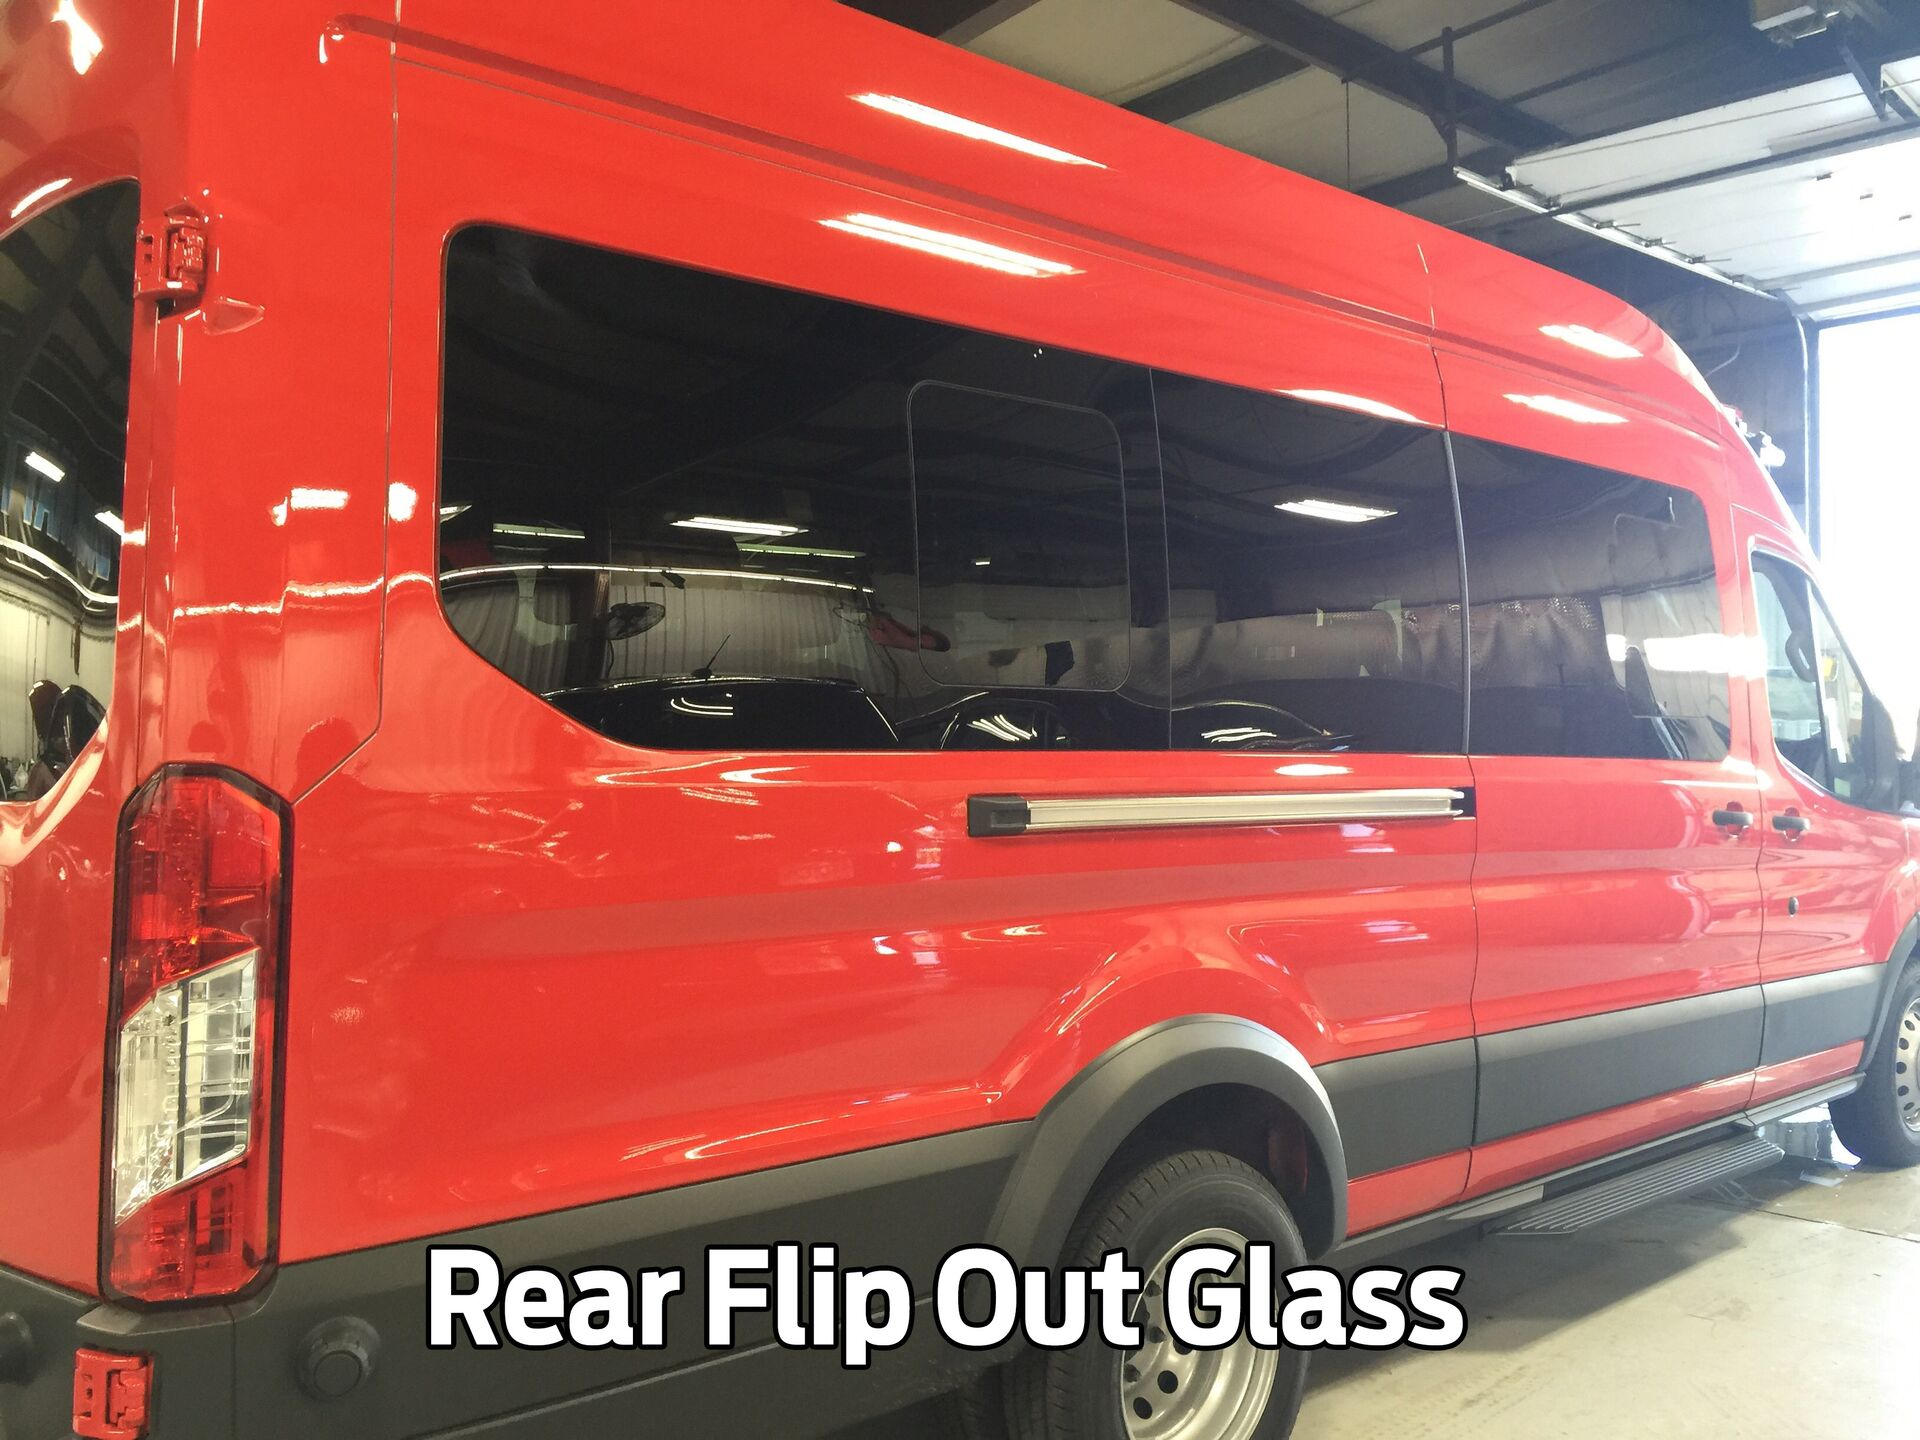 Rear Flip Out Glass